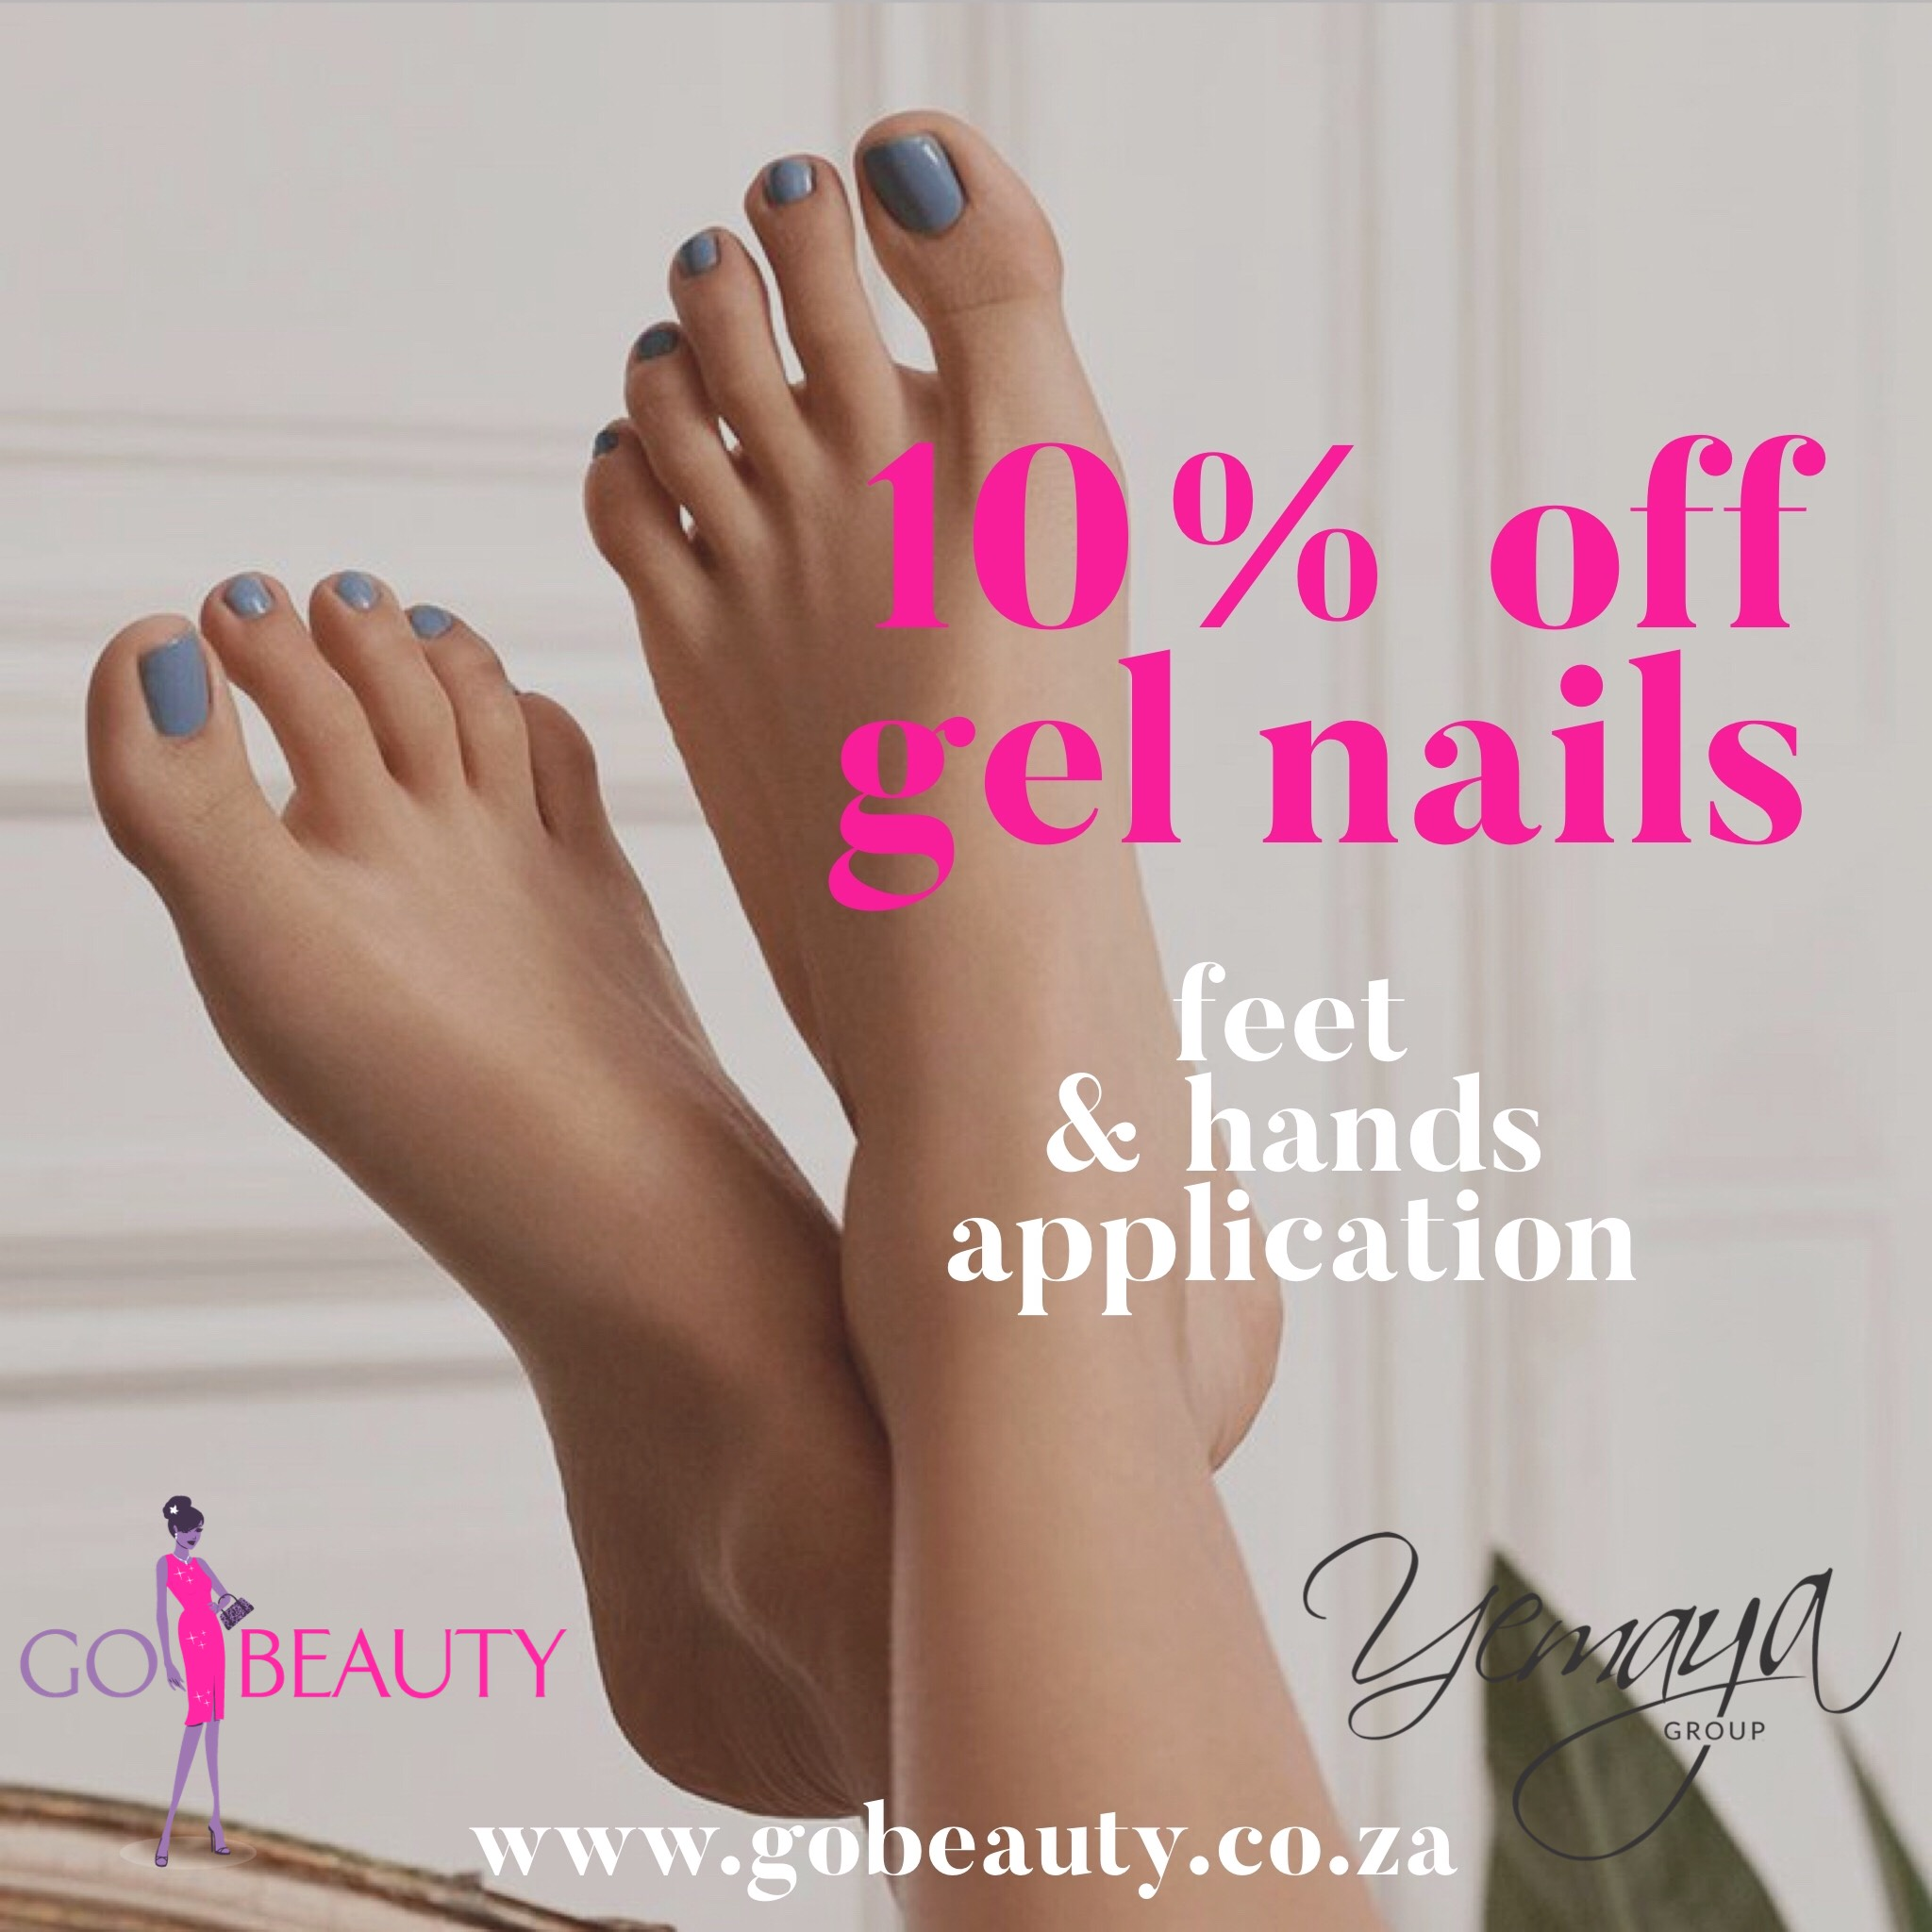 We've got a special Spring treat for you. Receive 10% off your next gel mani and pedi.